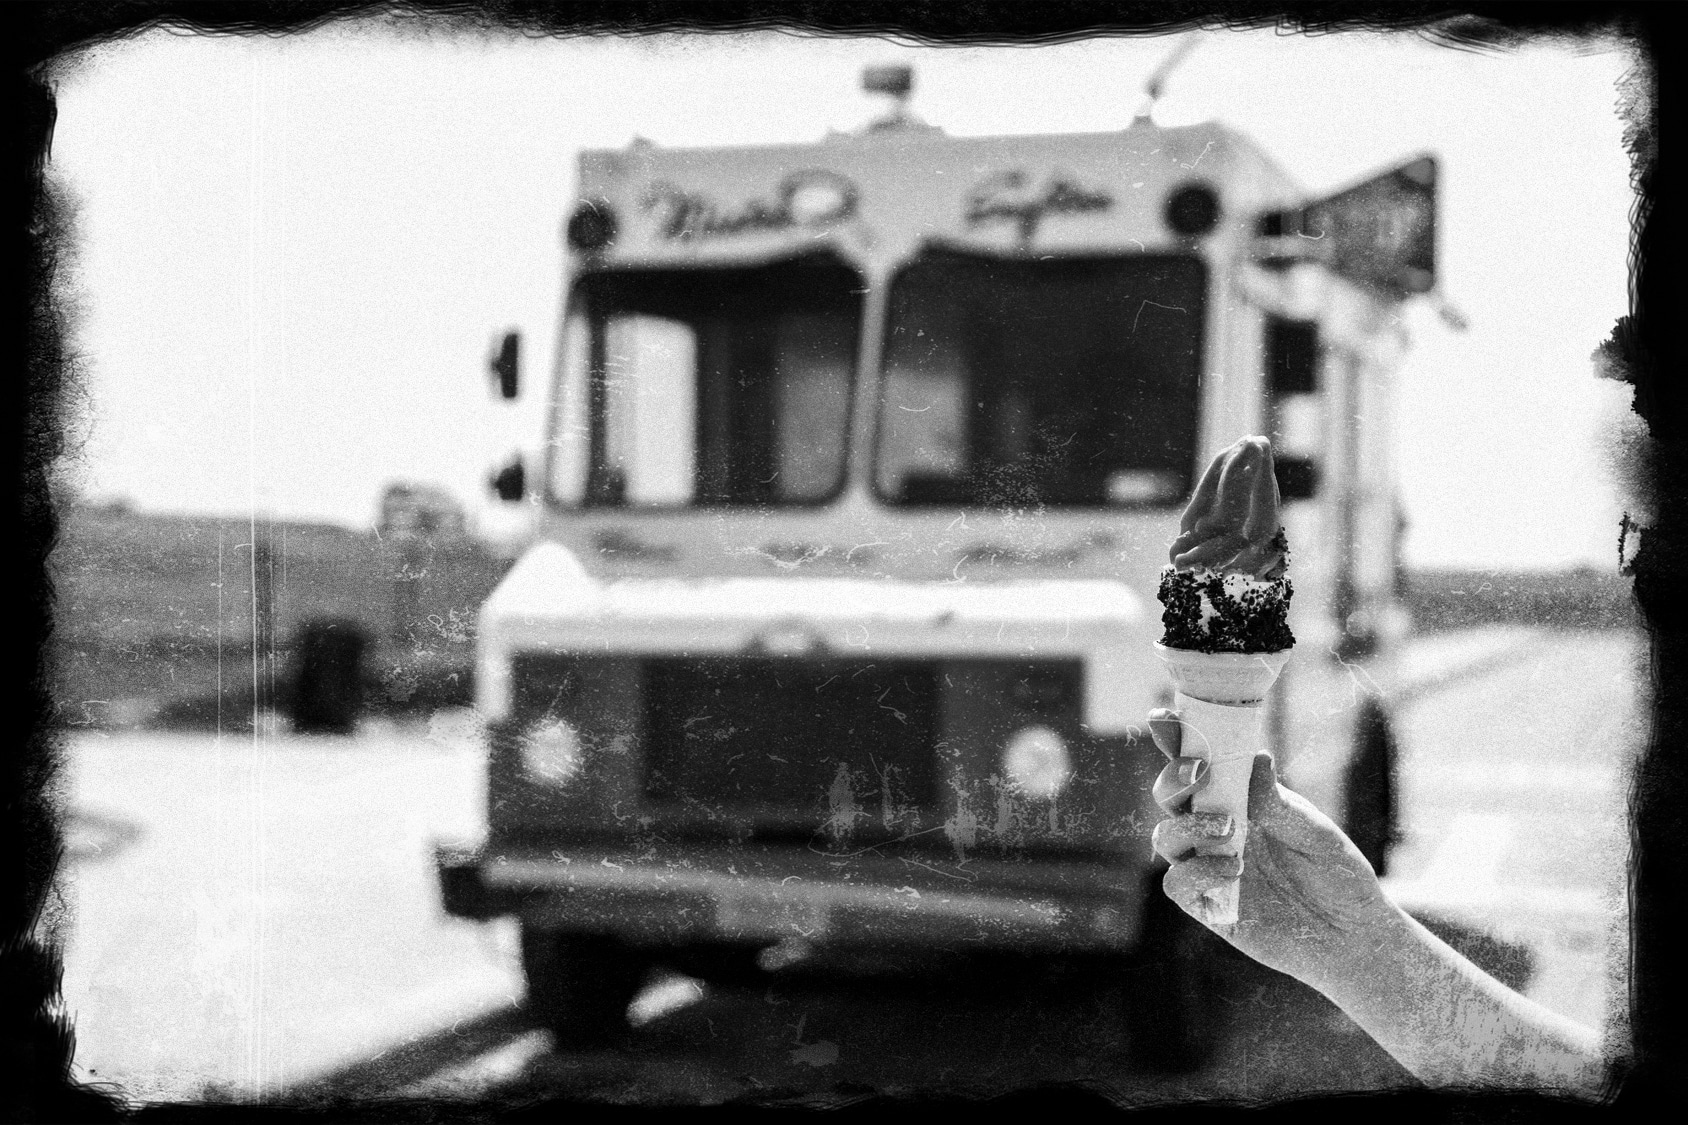 Old ice cream truck with ice cream cone